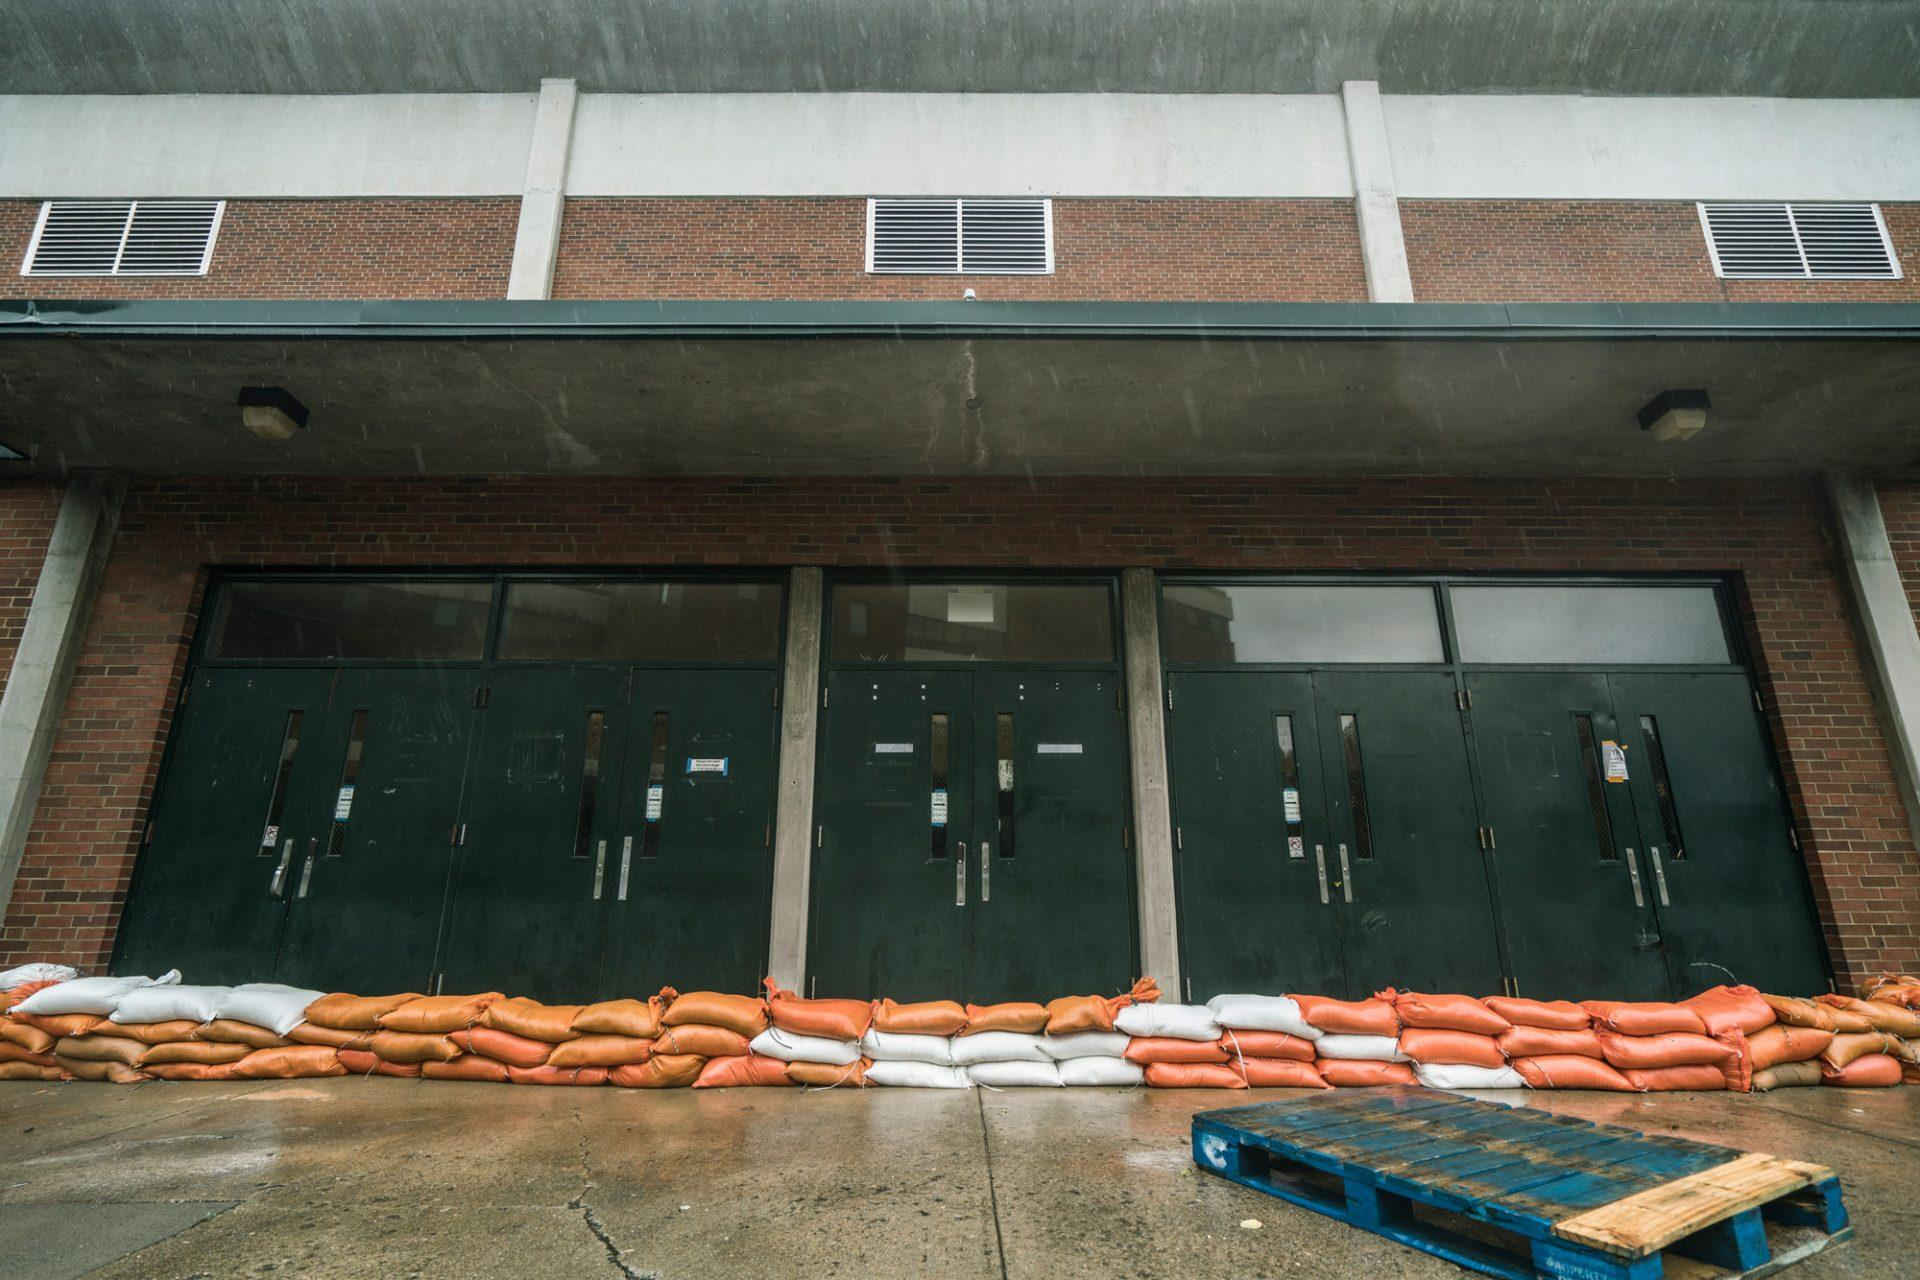 A wall of sandbags defend the Varsity Gym, one of the lowest points on campus, from floodwaters.